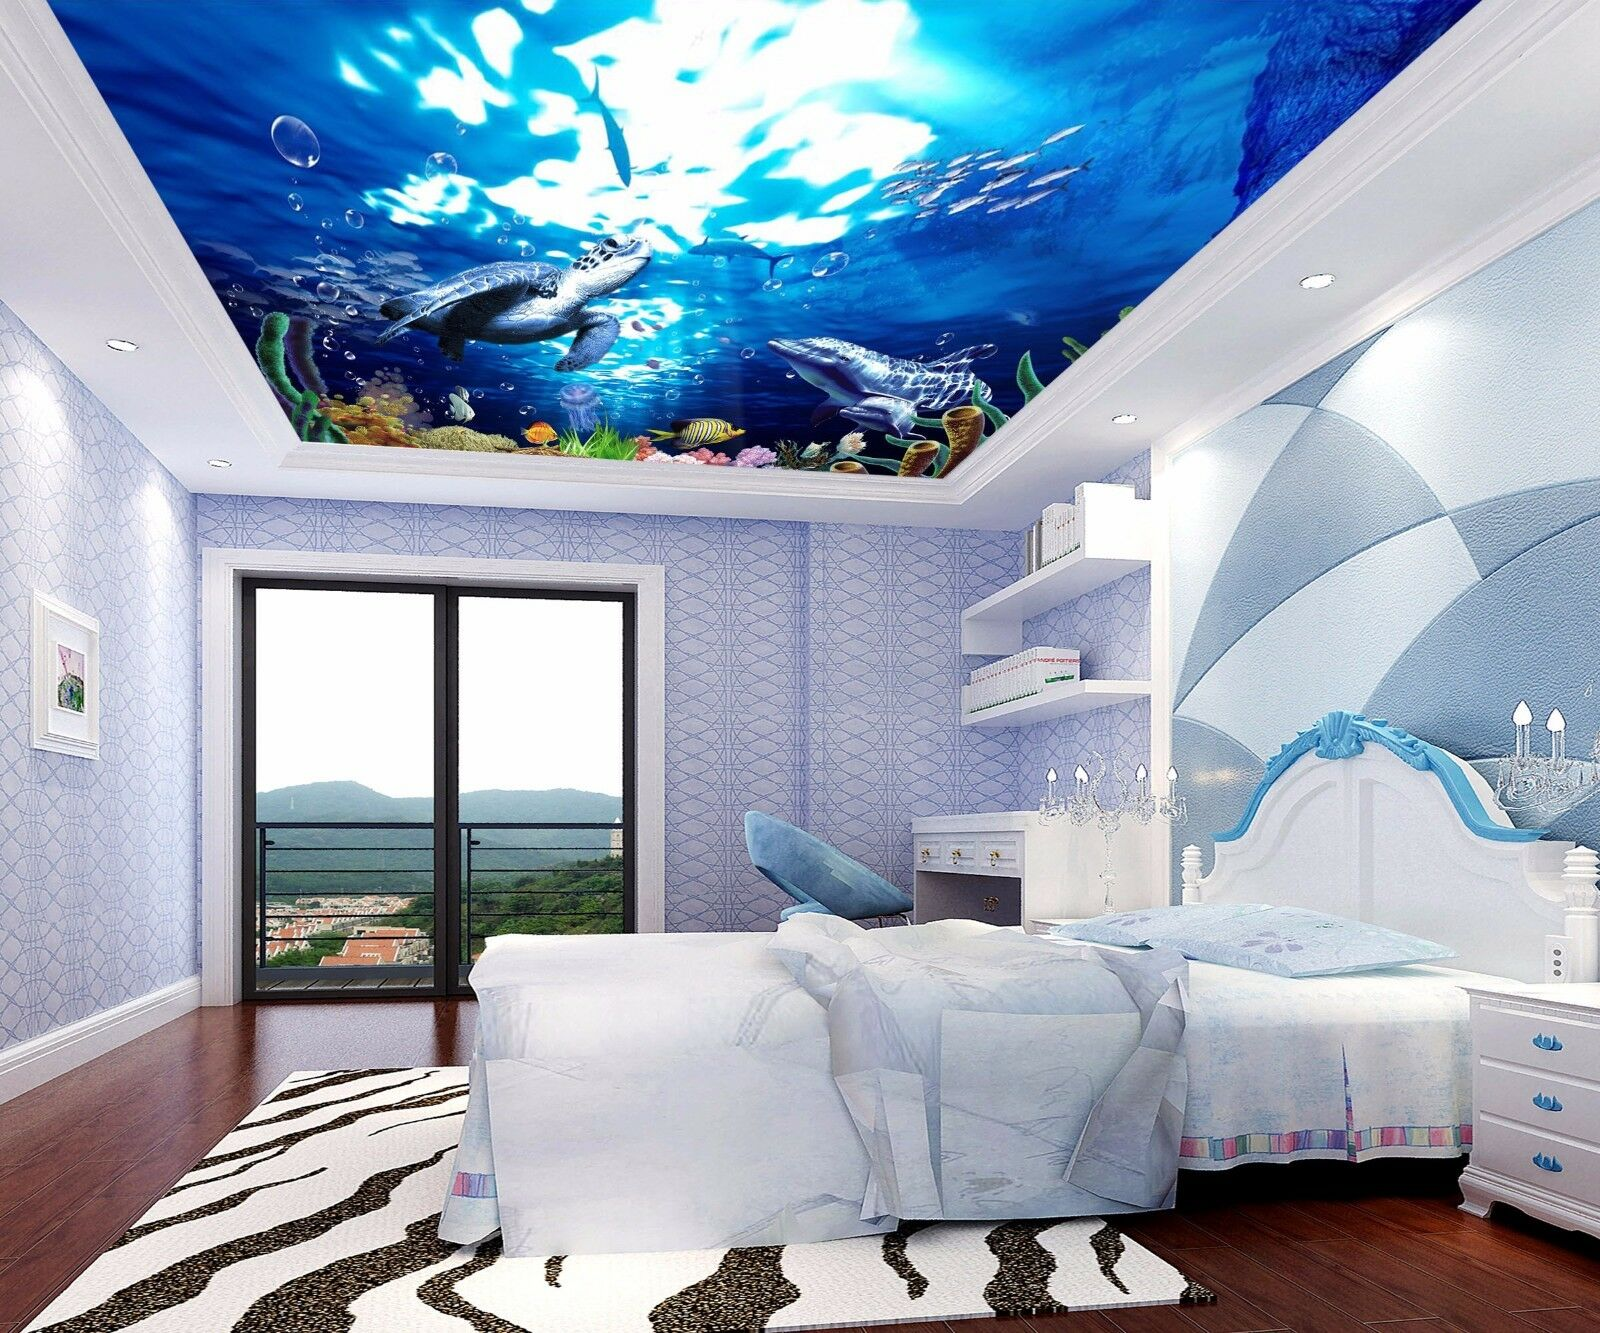 3D Dolphin Turtle 84 Ceiling WallPaper Murals Wall Print Decal Deco AJ WALLPAPER